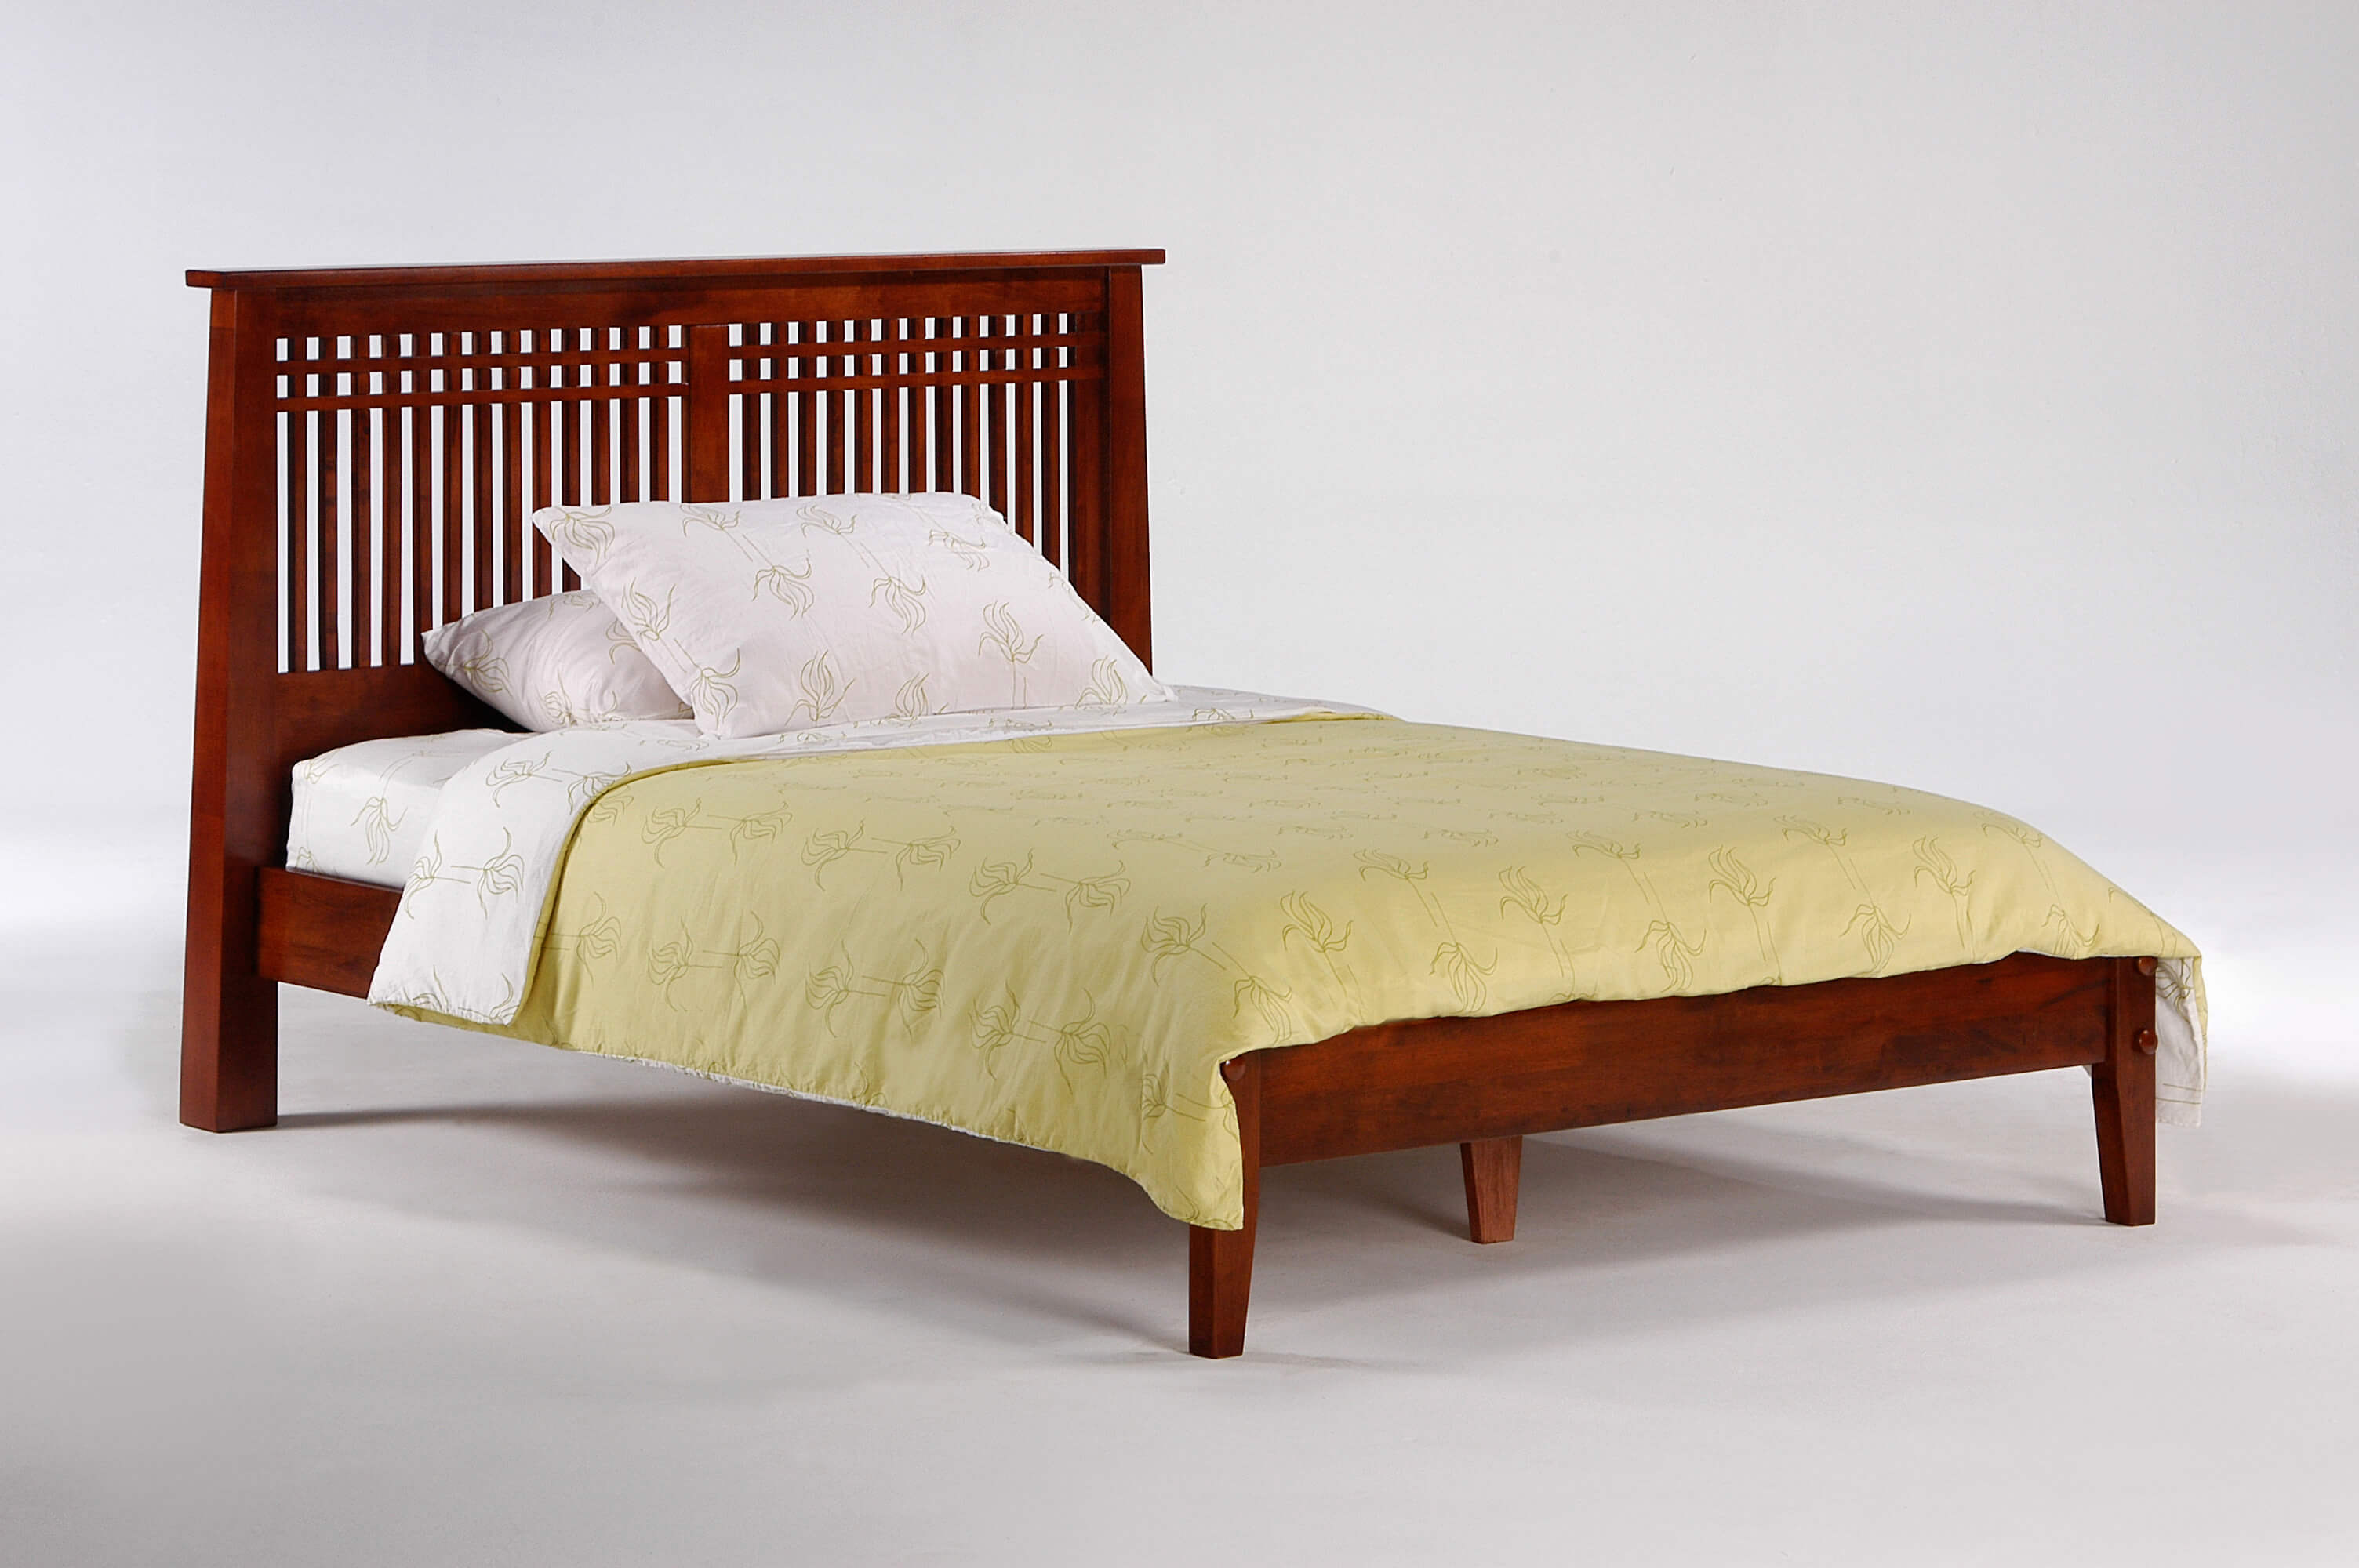 Solstice P Series plete Bed